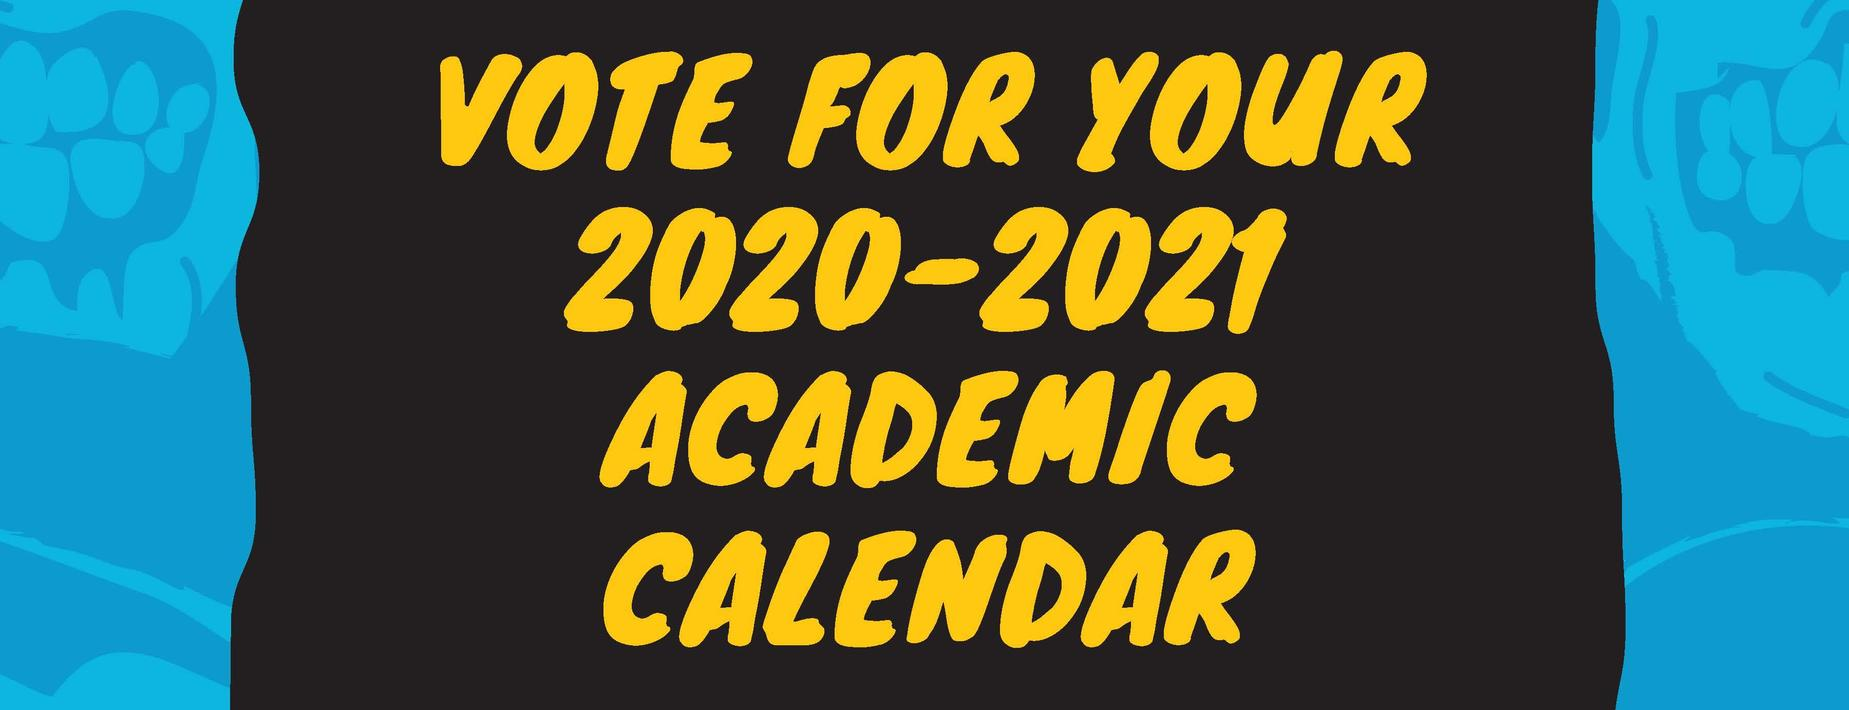 VOTE FOR YOUR 2020-2021 ACADEMIC CALENDAR